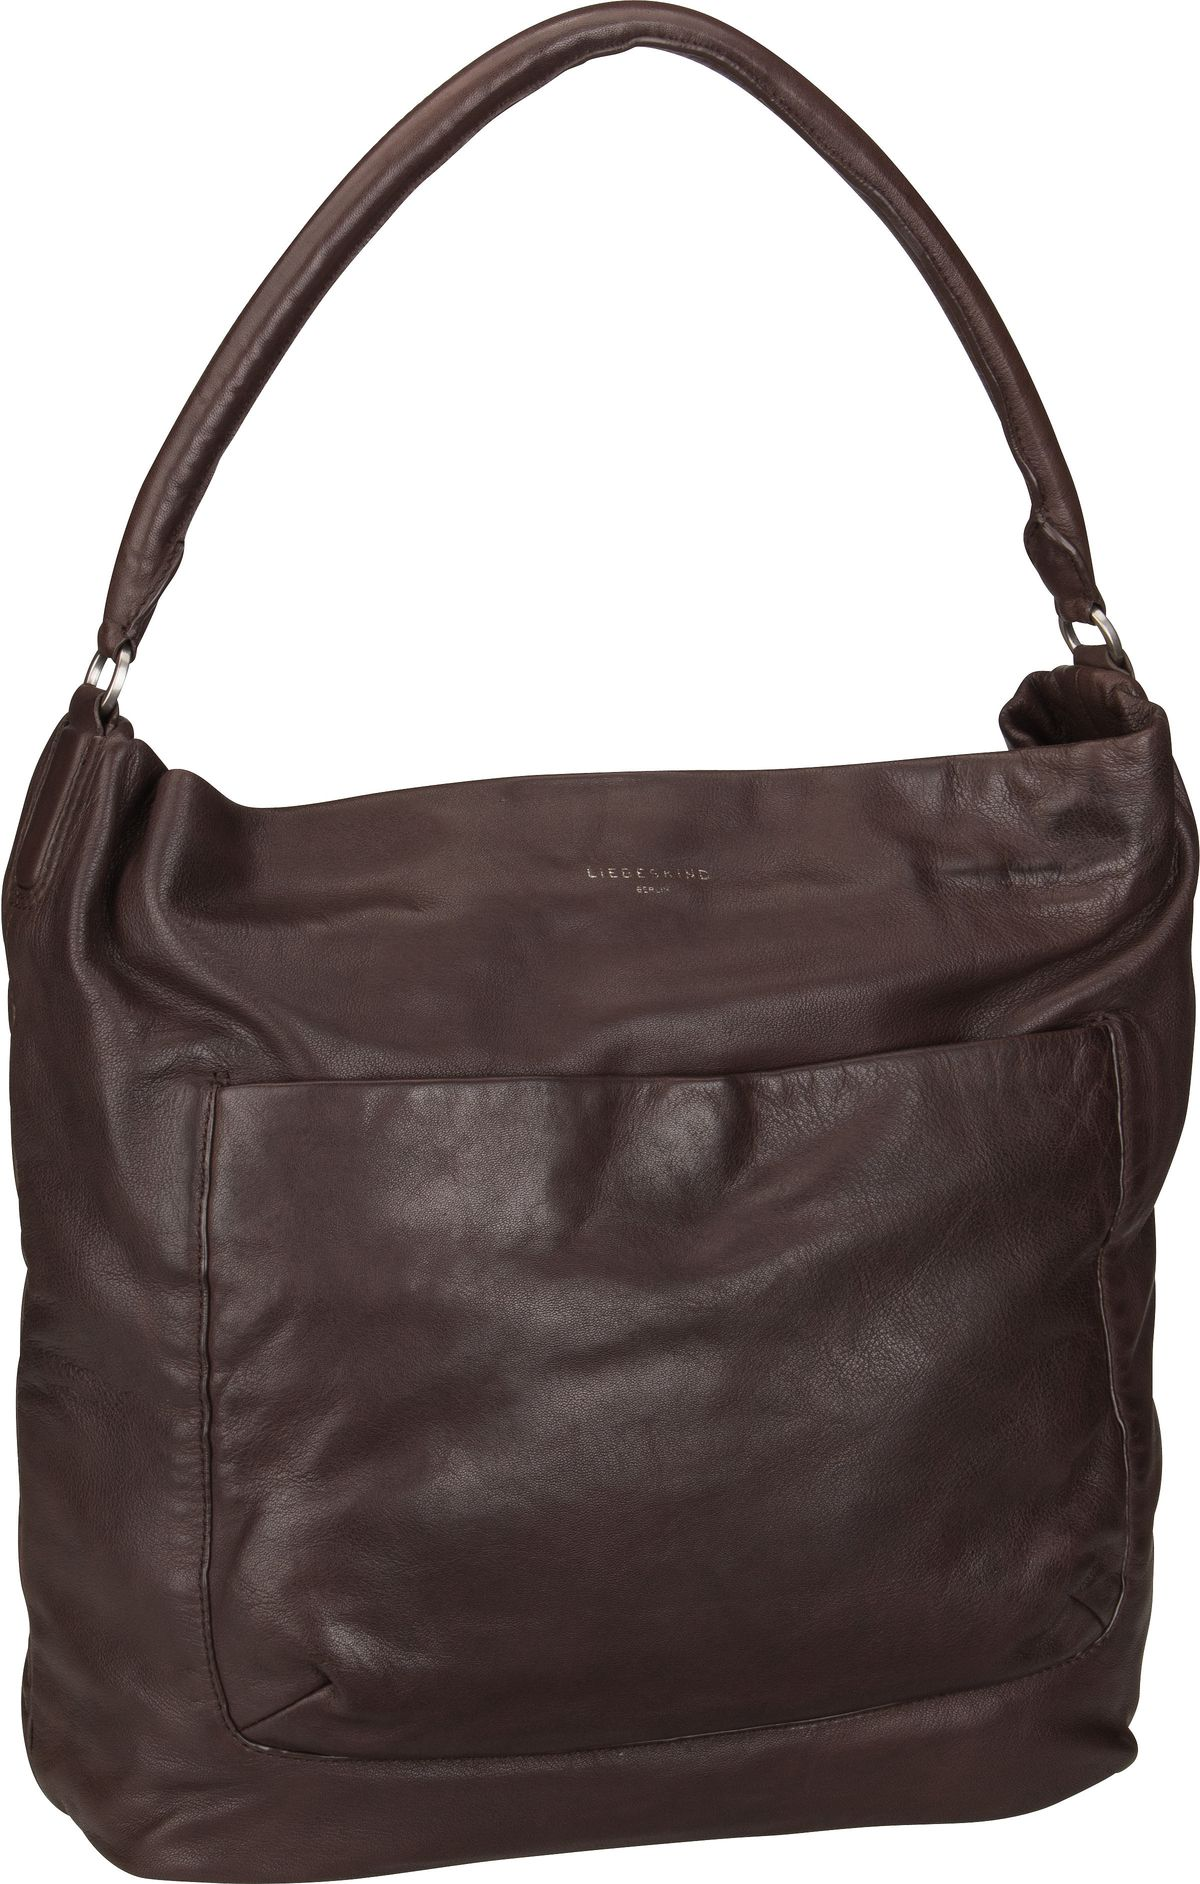 Berlin Handtasche Ever Hobo L Dark Brown